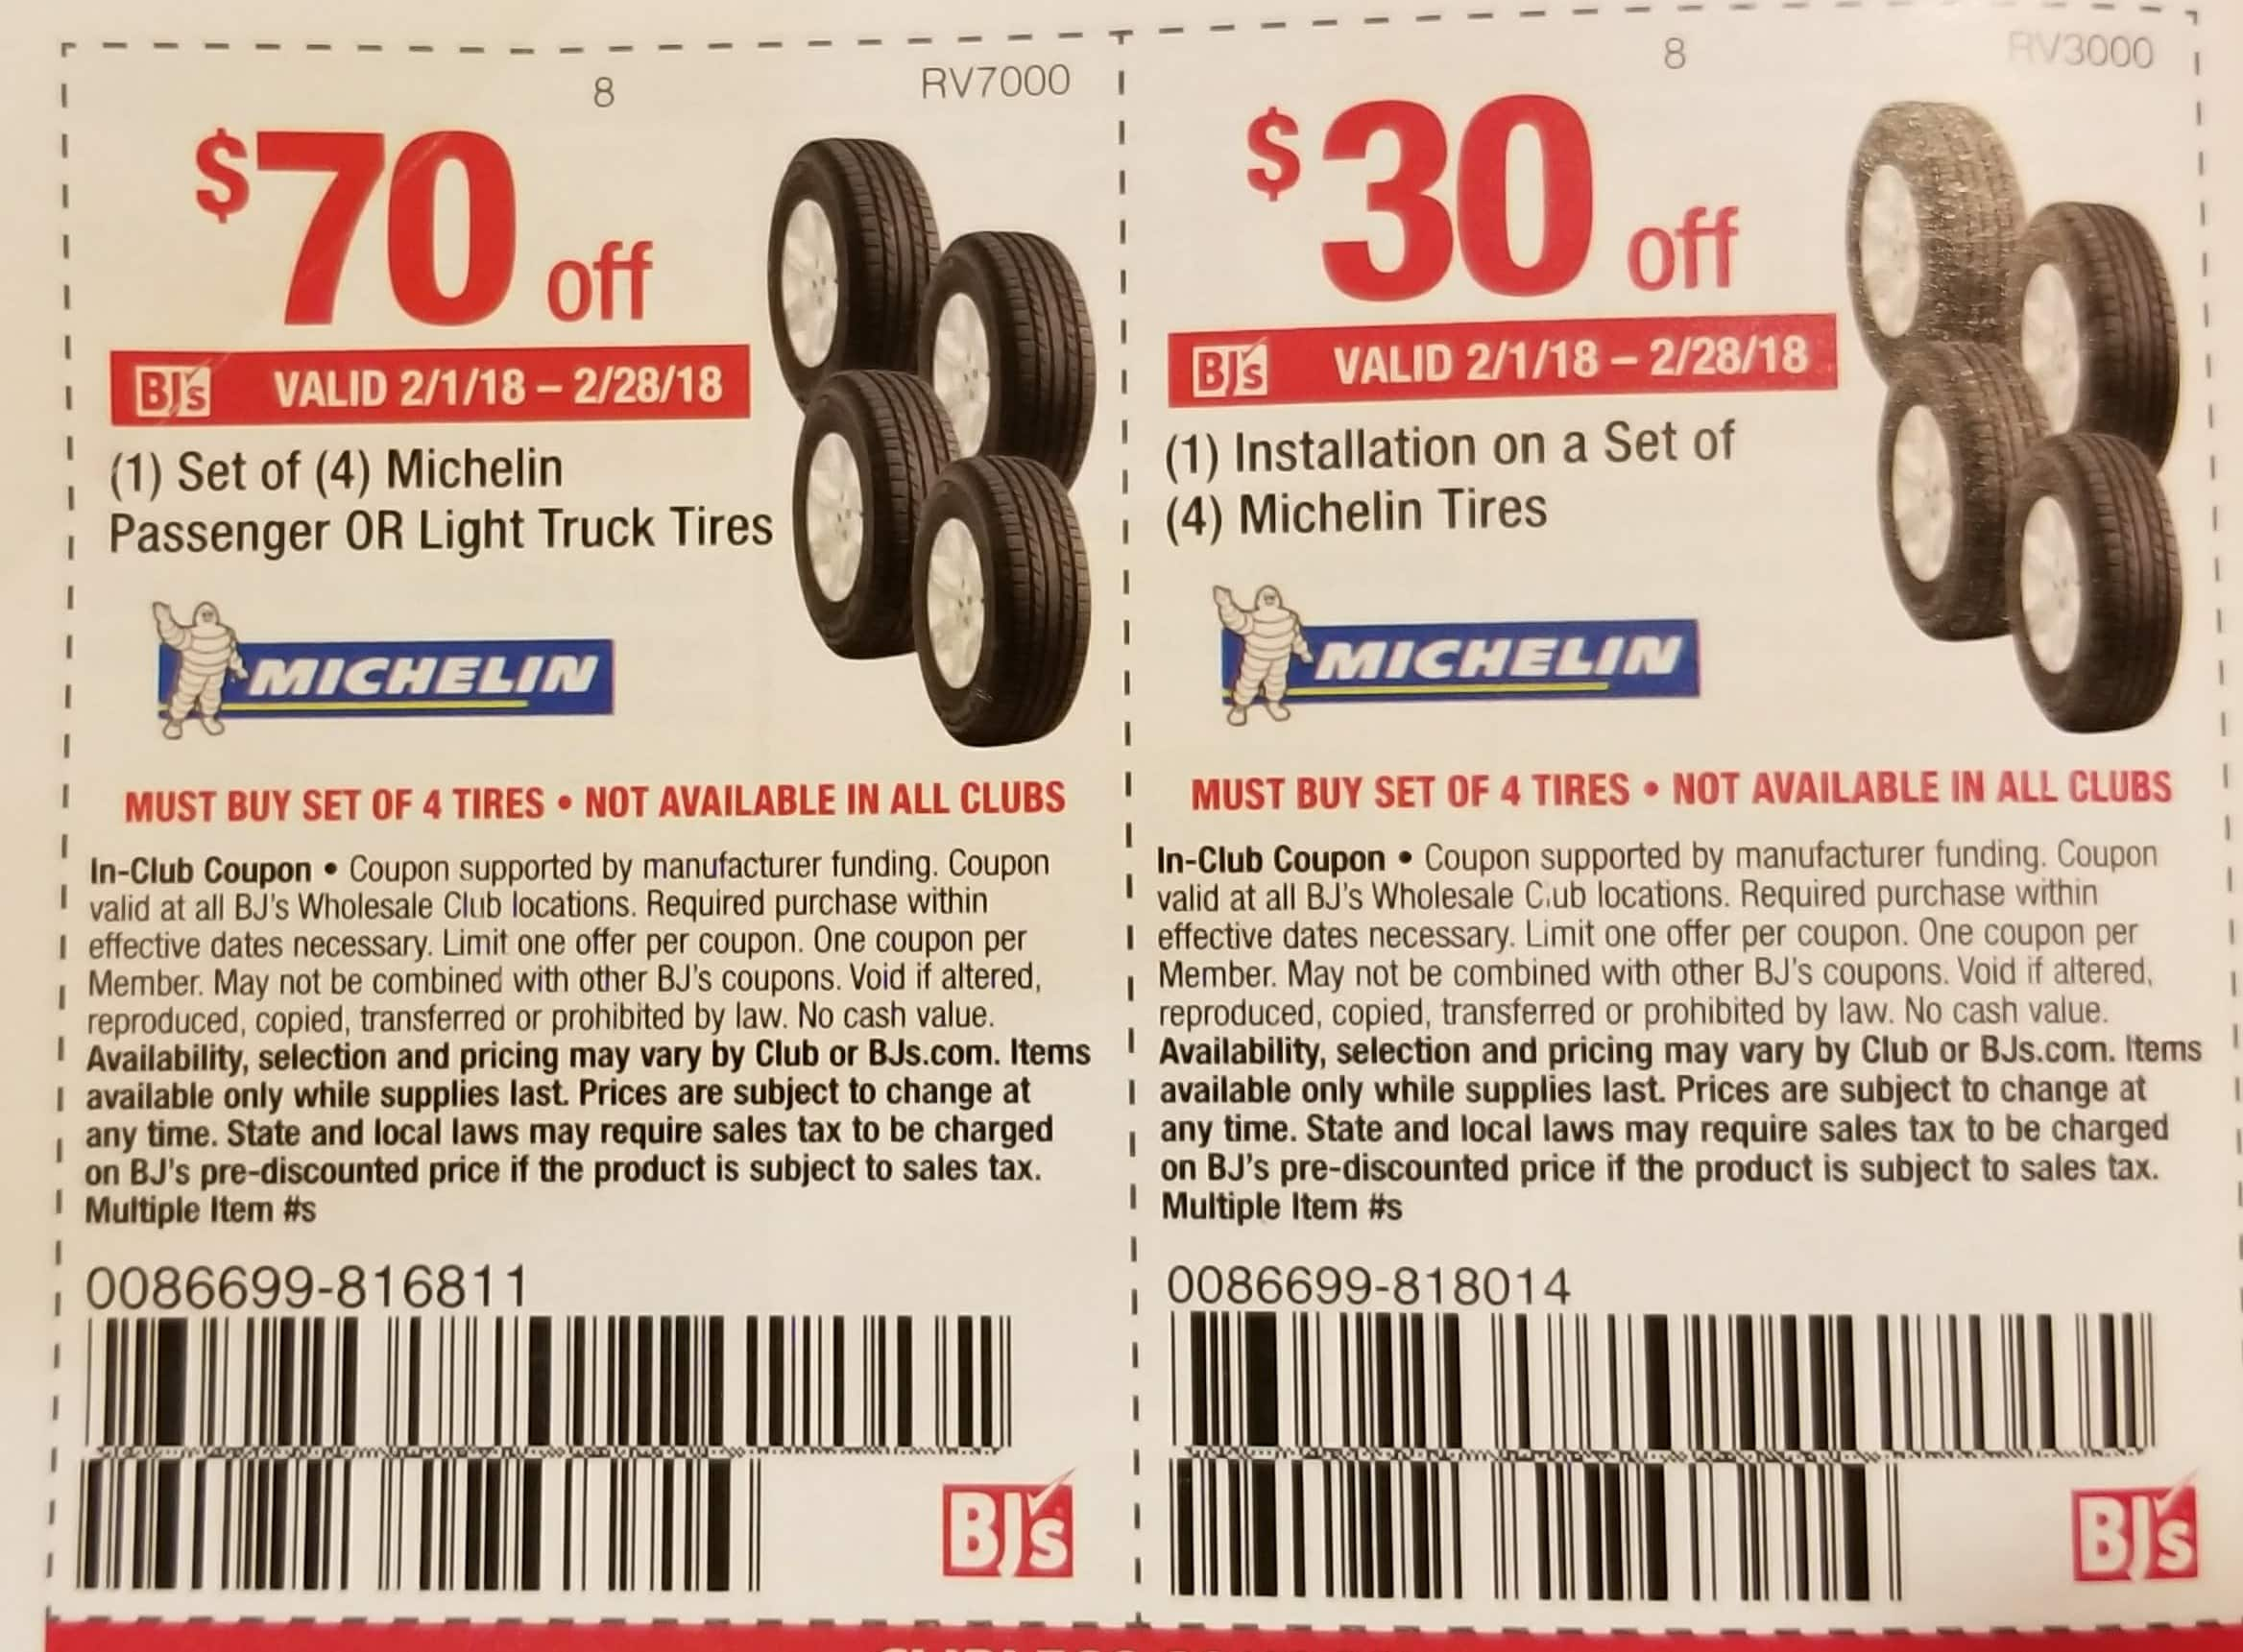 BJs Members: $70 off Set of 4 Michelin Tires (02/01-02/28)